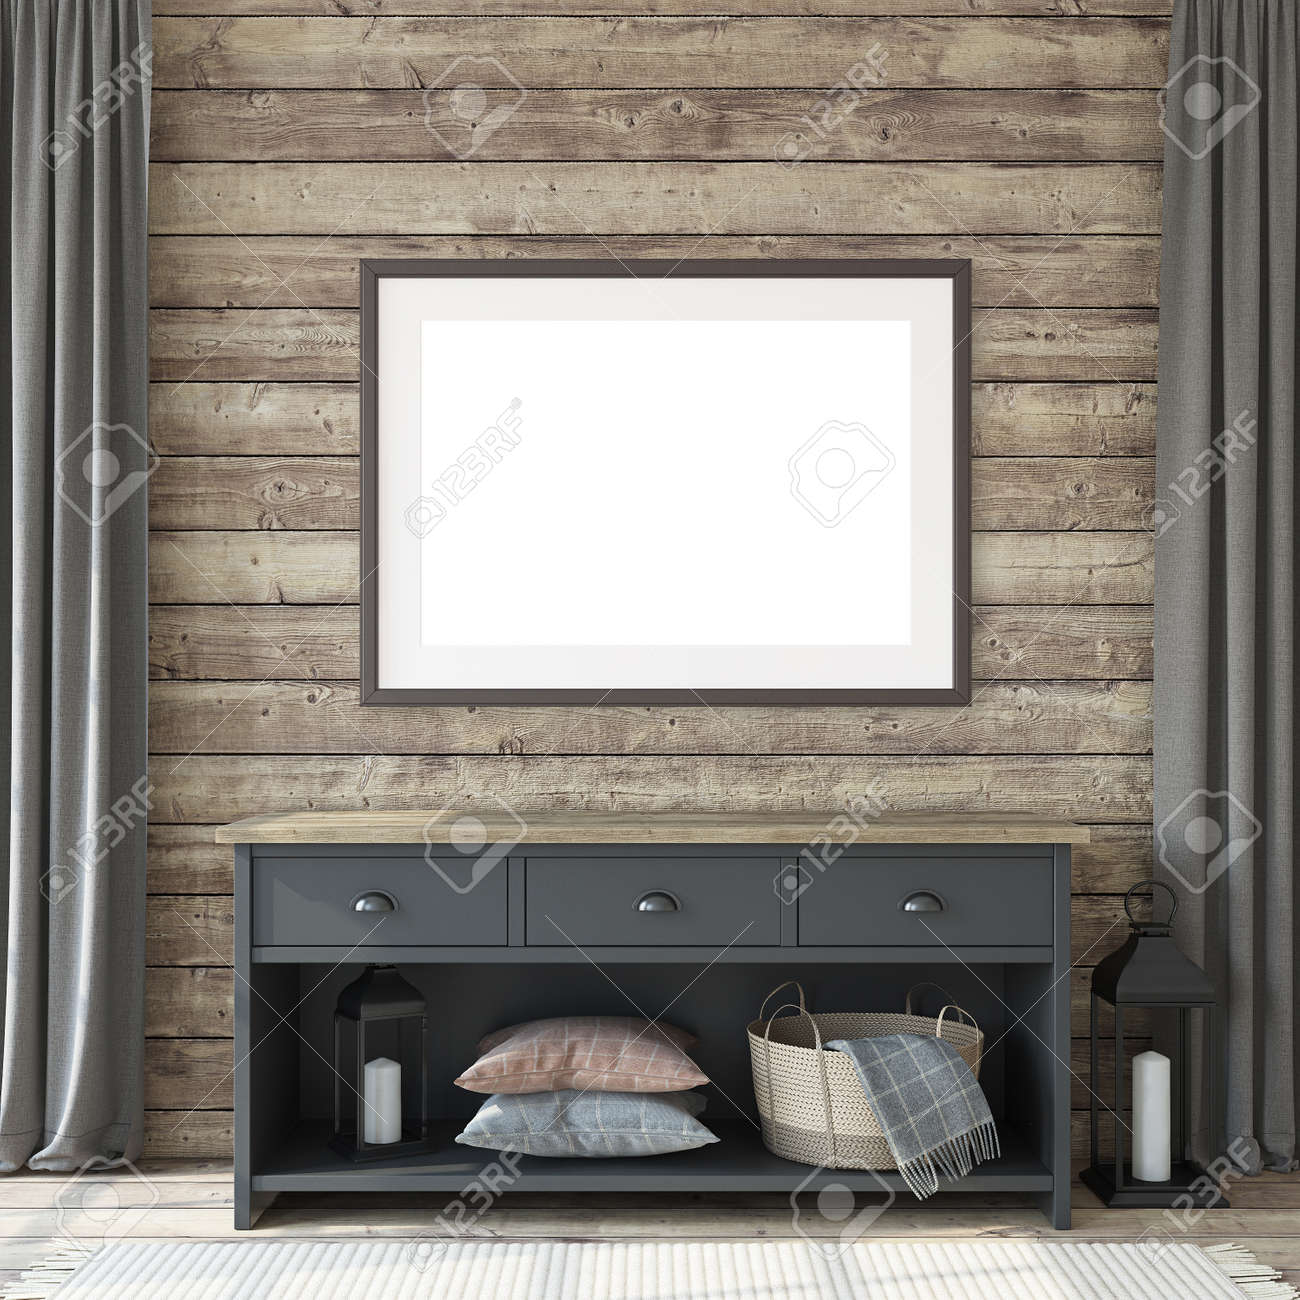 Entryway with the commode. Frame mockup. 3d render. - 163985517